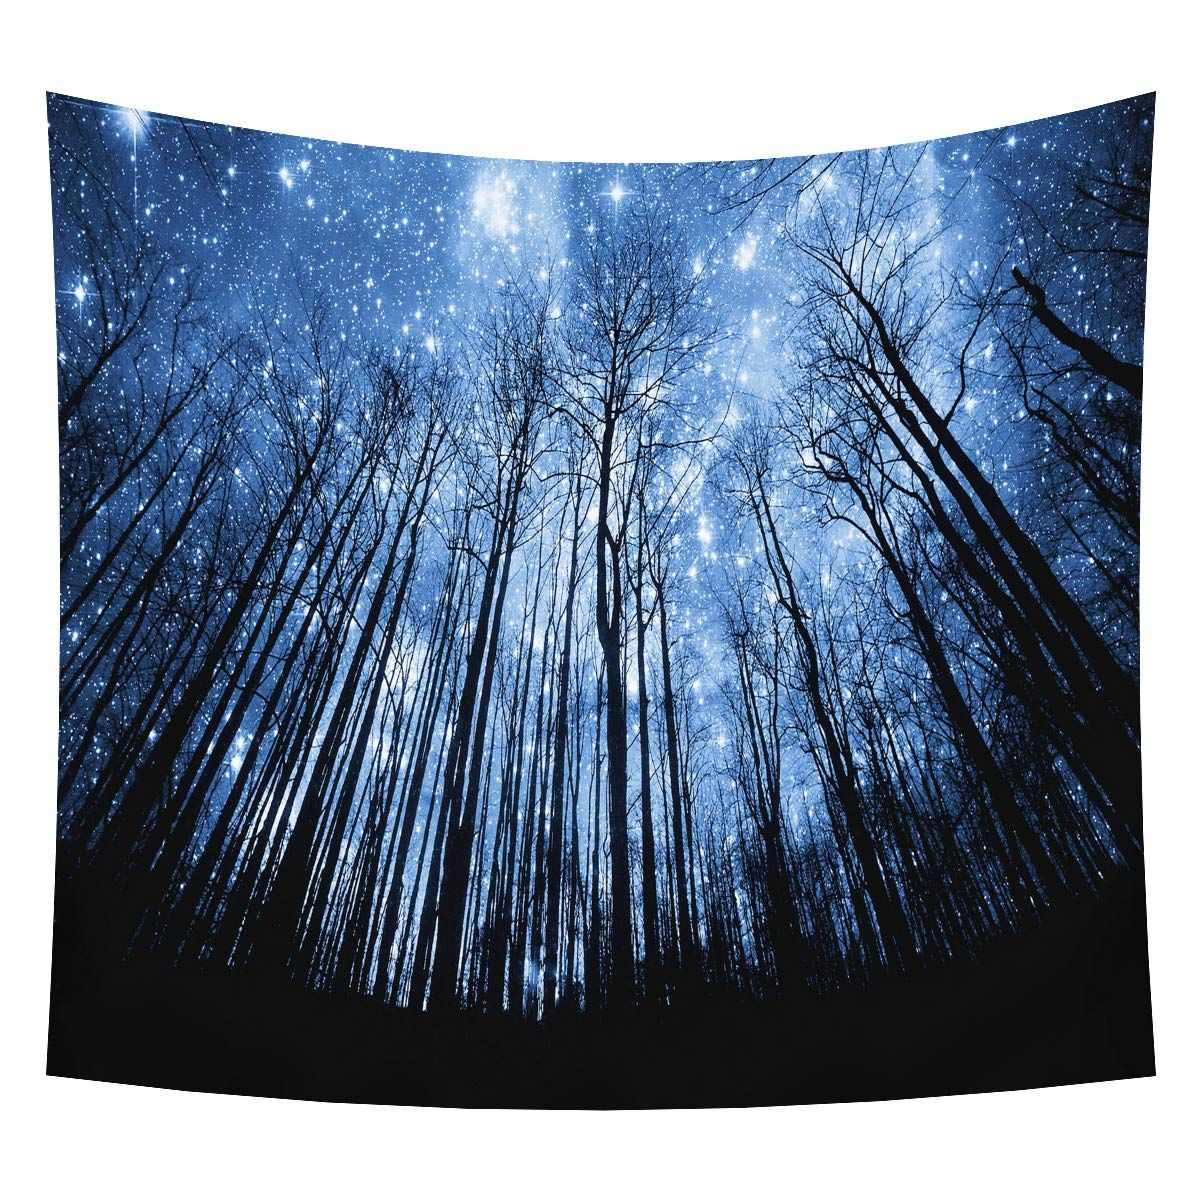 Scenery Wall Hanging Tapestry Blanket Beach Yoga Mat Home Carpet Home Room Decor